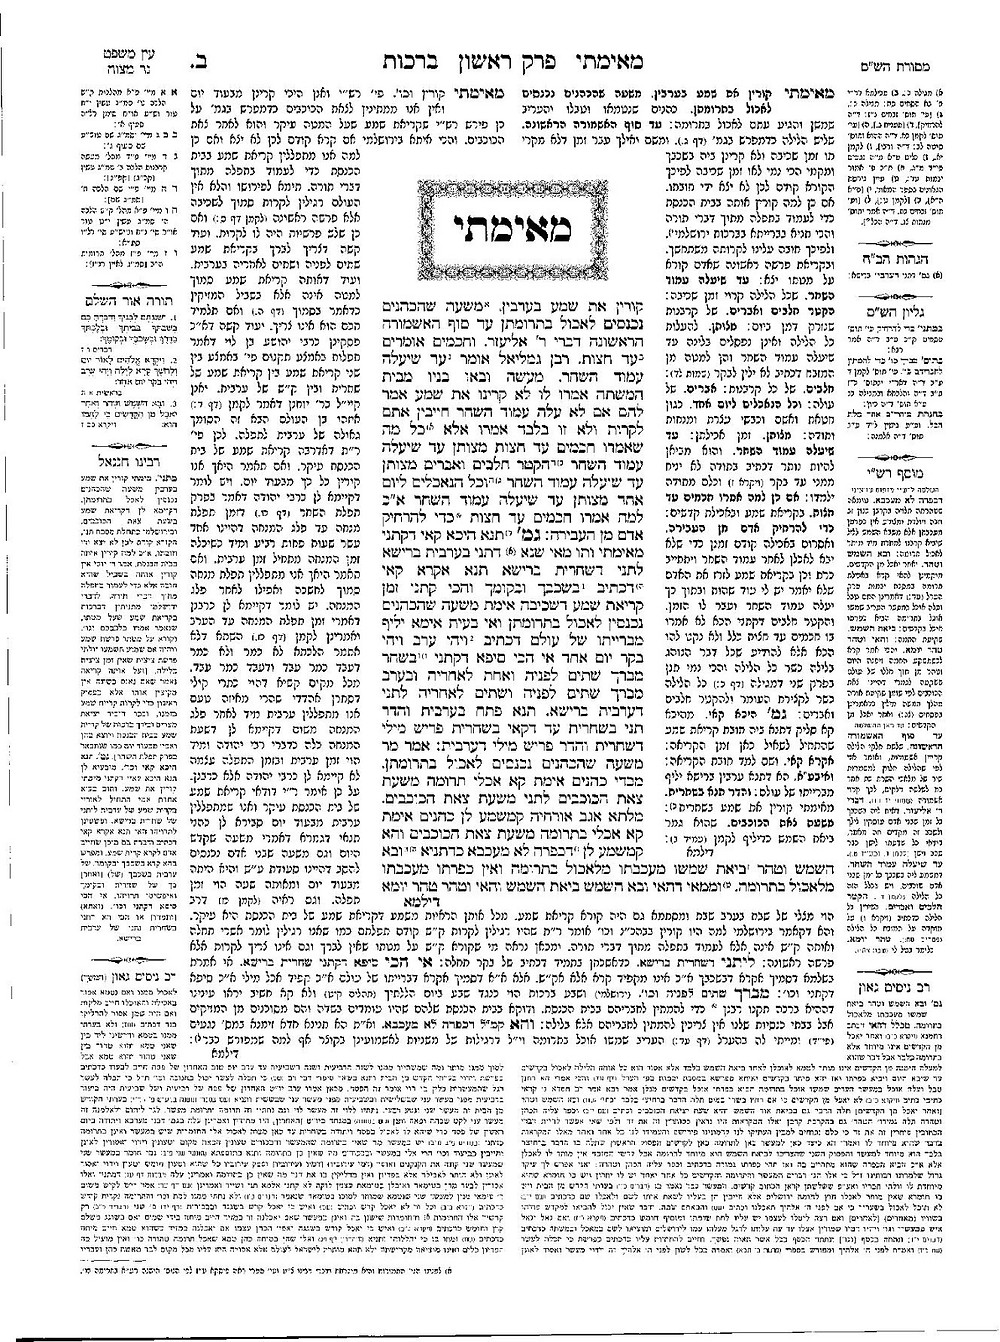 First page of the Babylonian Talmud, with commentaries